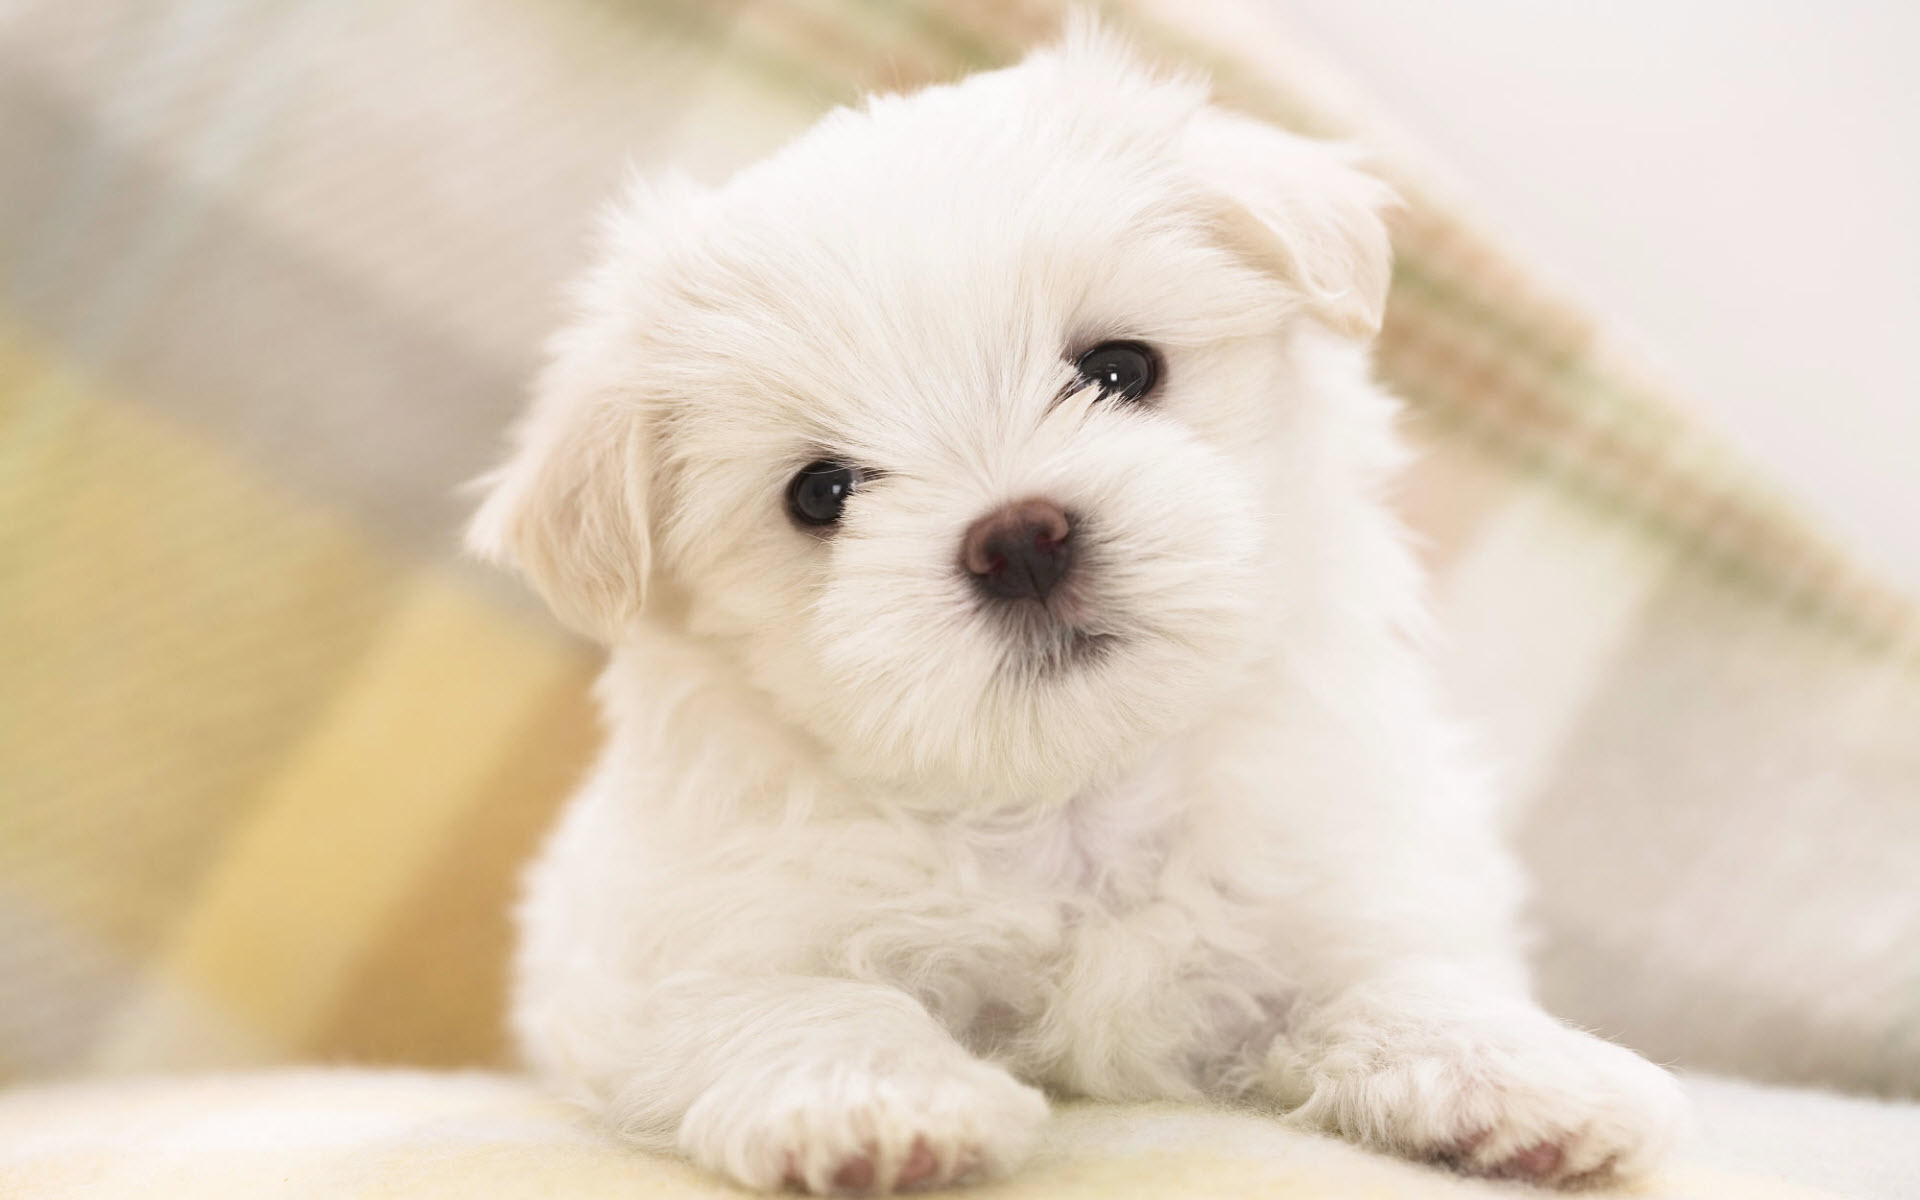 Very Cute White Puppy PC Wallpapers 1920x1200